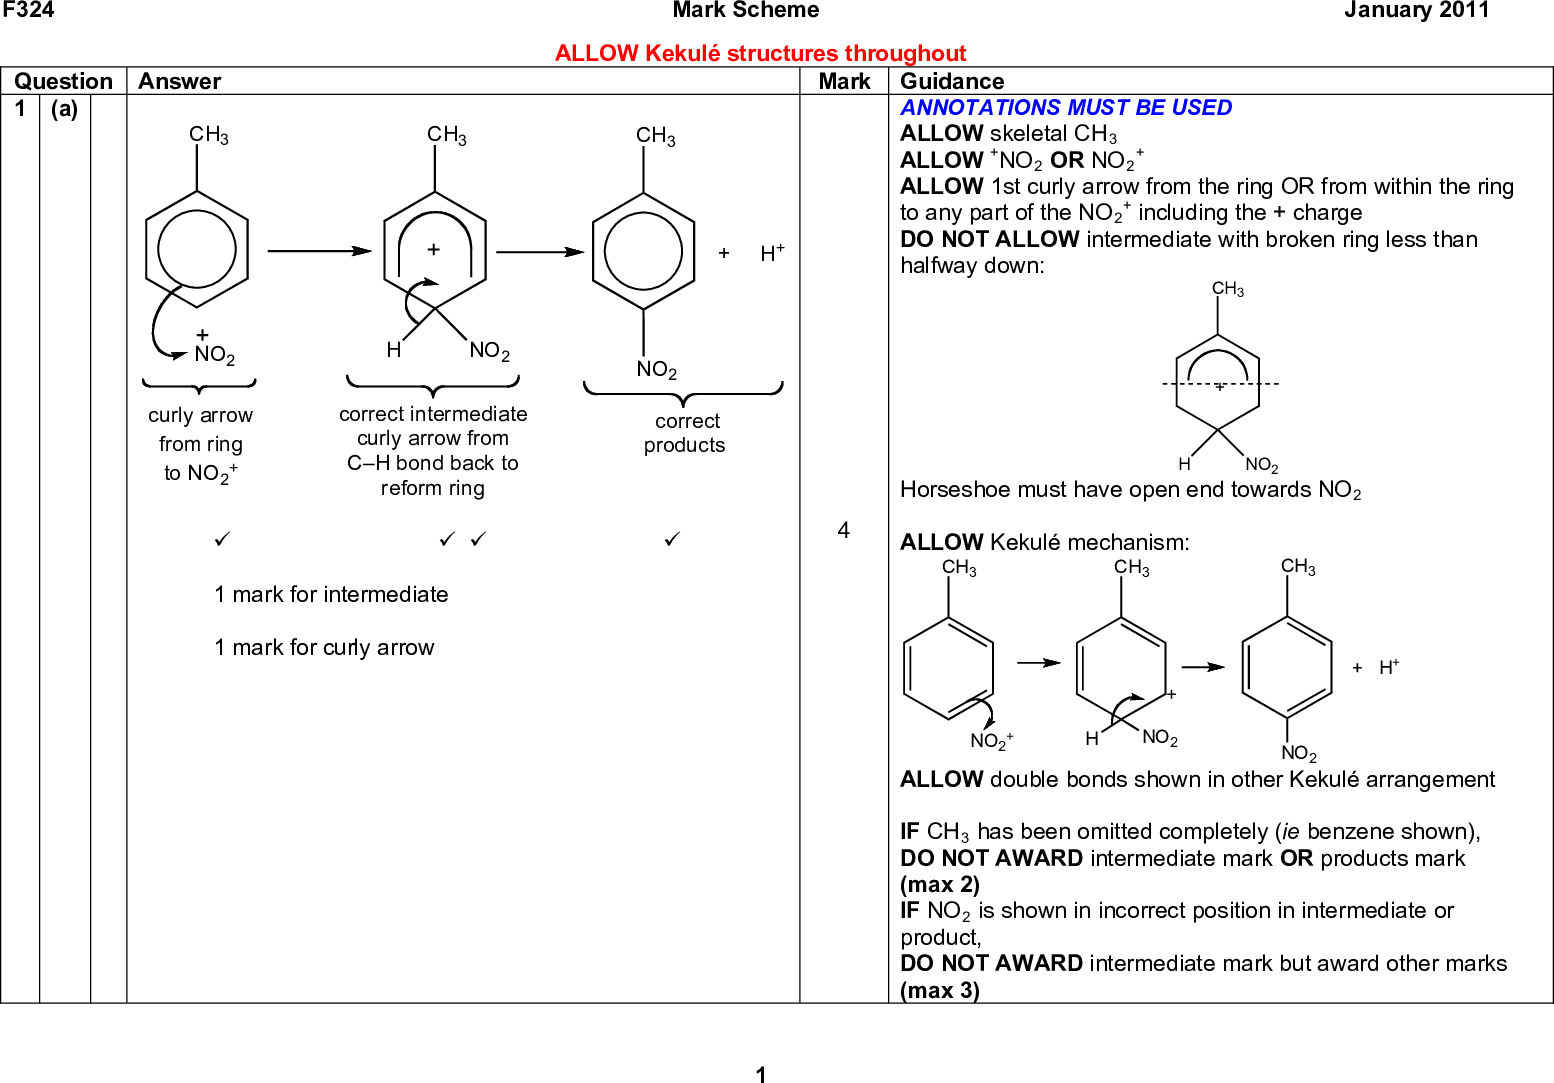 F324 Mark Scheme January 2011 Question Answer 1 (a) CH3 CH3 CH3 ALLOW Kekul structures throughout Mark Guidance ANNOTATIONS MUST BE USED ALLOW skeletal CH3 ALLOW +NO2 OR NO2 ALLOW 1st curly arrow from the ring OR from within the ring to any part of the NO2 DO NOT ALLOW intermediate with broken ring less than halfway down: + including the + charge CH3 Horseshoe must have open end towards NO2 ALLOW Kekul mechanism: NO2 CH3 CH3 CH3 NO2 curly arrow from ring + to NO2 NO2 correct intermediate curly arrow from CH bond back to reform ring H+ NO2 correct products (cid:57) (cid:57) (cid:57) (cid:57) 1 mark for intermediate 1 mark for curly arrow H+ + NO2 + NO2 NO2 ALLOW double bonds shown in other Kekul arrangement IF CH3 has been omitted completely (ie benzene shown), DO NOT AWARD intermediate mark OR products mark (max 2) IF NO2 is shown in incorrect position in intermediate or product, DO NOT AWARD intermediate mark but award other marks (max 3)<br />  F324 Question Answer 1 (b ) O2N CH3 CH3 NO2 NO2 (cid:57) (cid:57) 1st stage isomer: isomer 3 (cid:57) product: CH3 (cid:57) NH2 H2N reagents: Sn AND (conc) HCl (cid:57) equation: CH3 (c) O2N Mark Scheme January 2011 Mark Guidance ALLOW any correct unambiguous structures ALLOW NO2 Note: connectivity is NOT being assessed in this part NO2 ANNOTATIONS MUST BE USED ALLOW structure of isomer 3 shown separately OR in equation ALLOW structure of product shown separately OR in equation ALLOW correct name (3,5-diaminomethylbenzene) IGNORE incorrect name DO NOT ALLOW CH3C6H3(NH2)2 ALLOW Zn + HCl/H2 + metal catalyst/LiAlH4/Na in ethanol IGNORE NaBH4 ALLOW Sn and HCl followed by NaOH DO NOT ALLOW Sn and HCl and NaOH IF isomer 3 OR product are given in equation but not shown previously then credit here Also credit reagents here if shown (eg above arrow) ALLOW correct structural OR displayed OR skeletal formula ALLOW combination of formulae as long as unambiguous CH3 12 [H] NO2 H2N 4 H2O NH2 (cid:57)<br />  Mark Scheme January 2011 Mark 